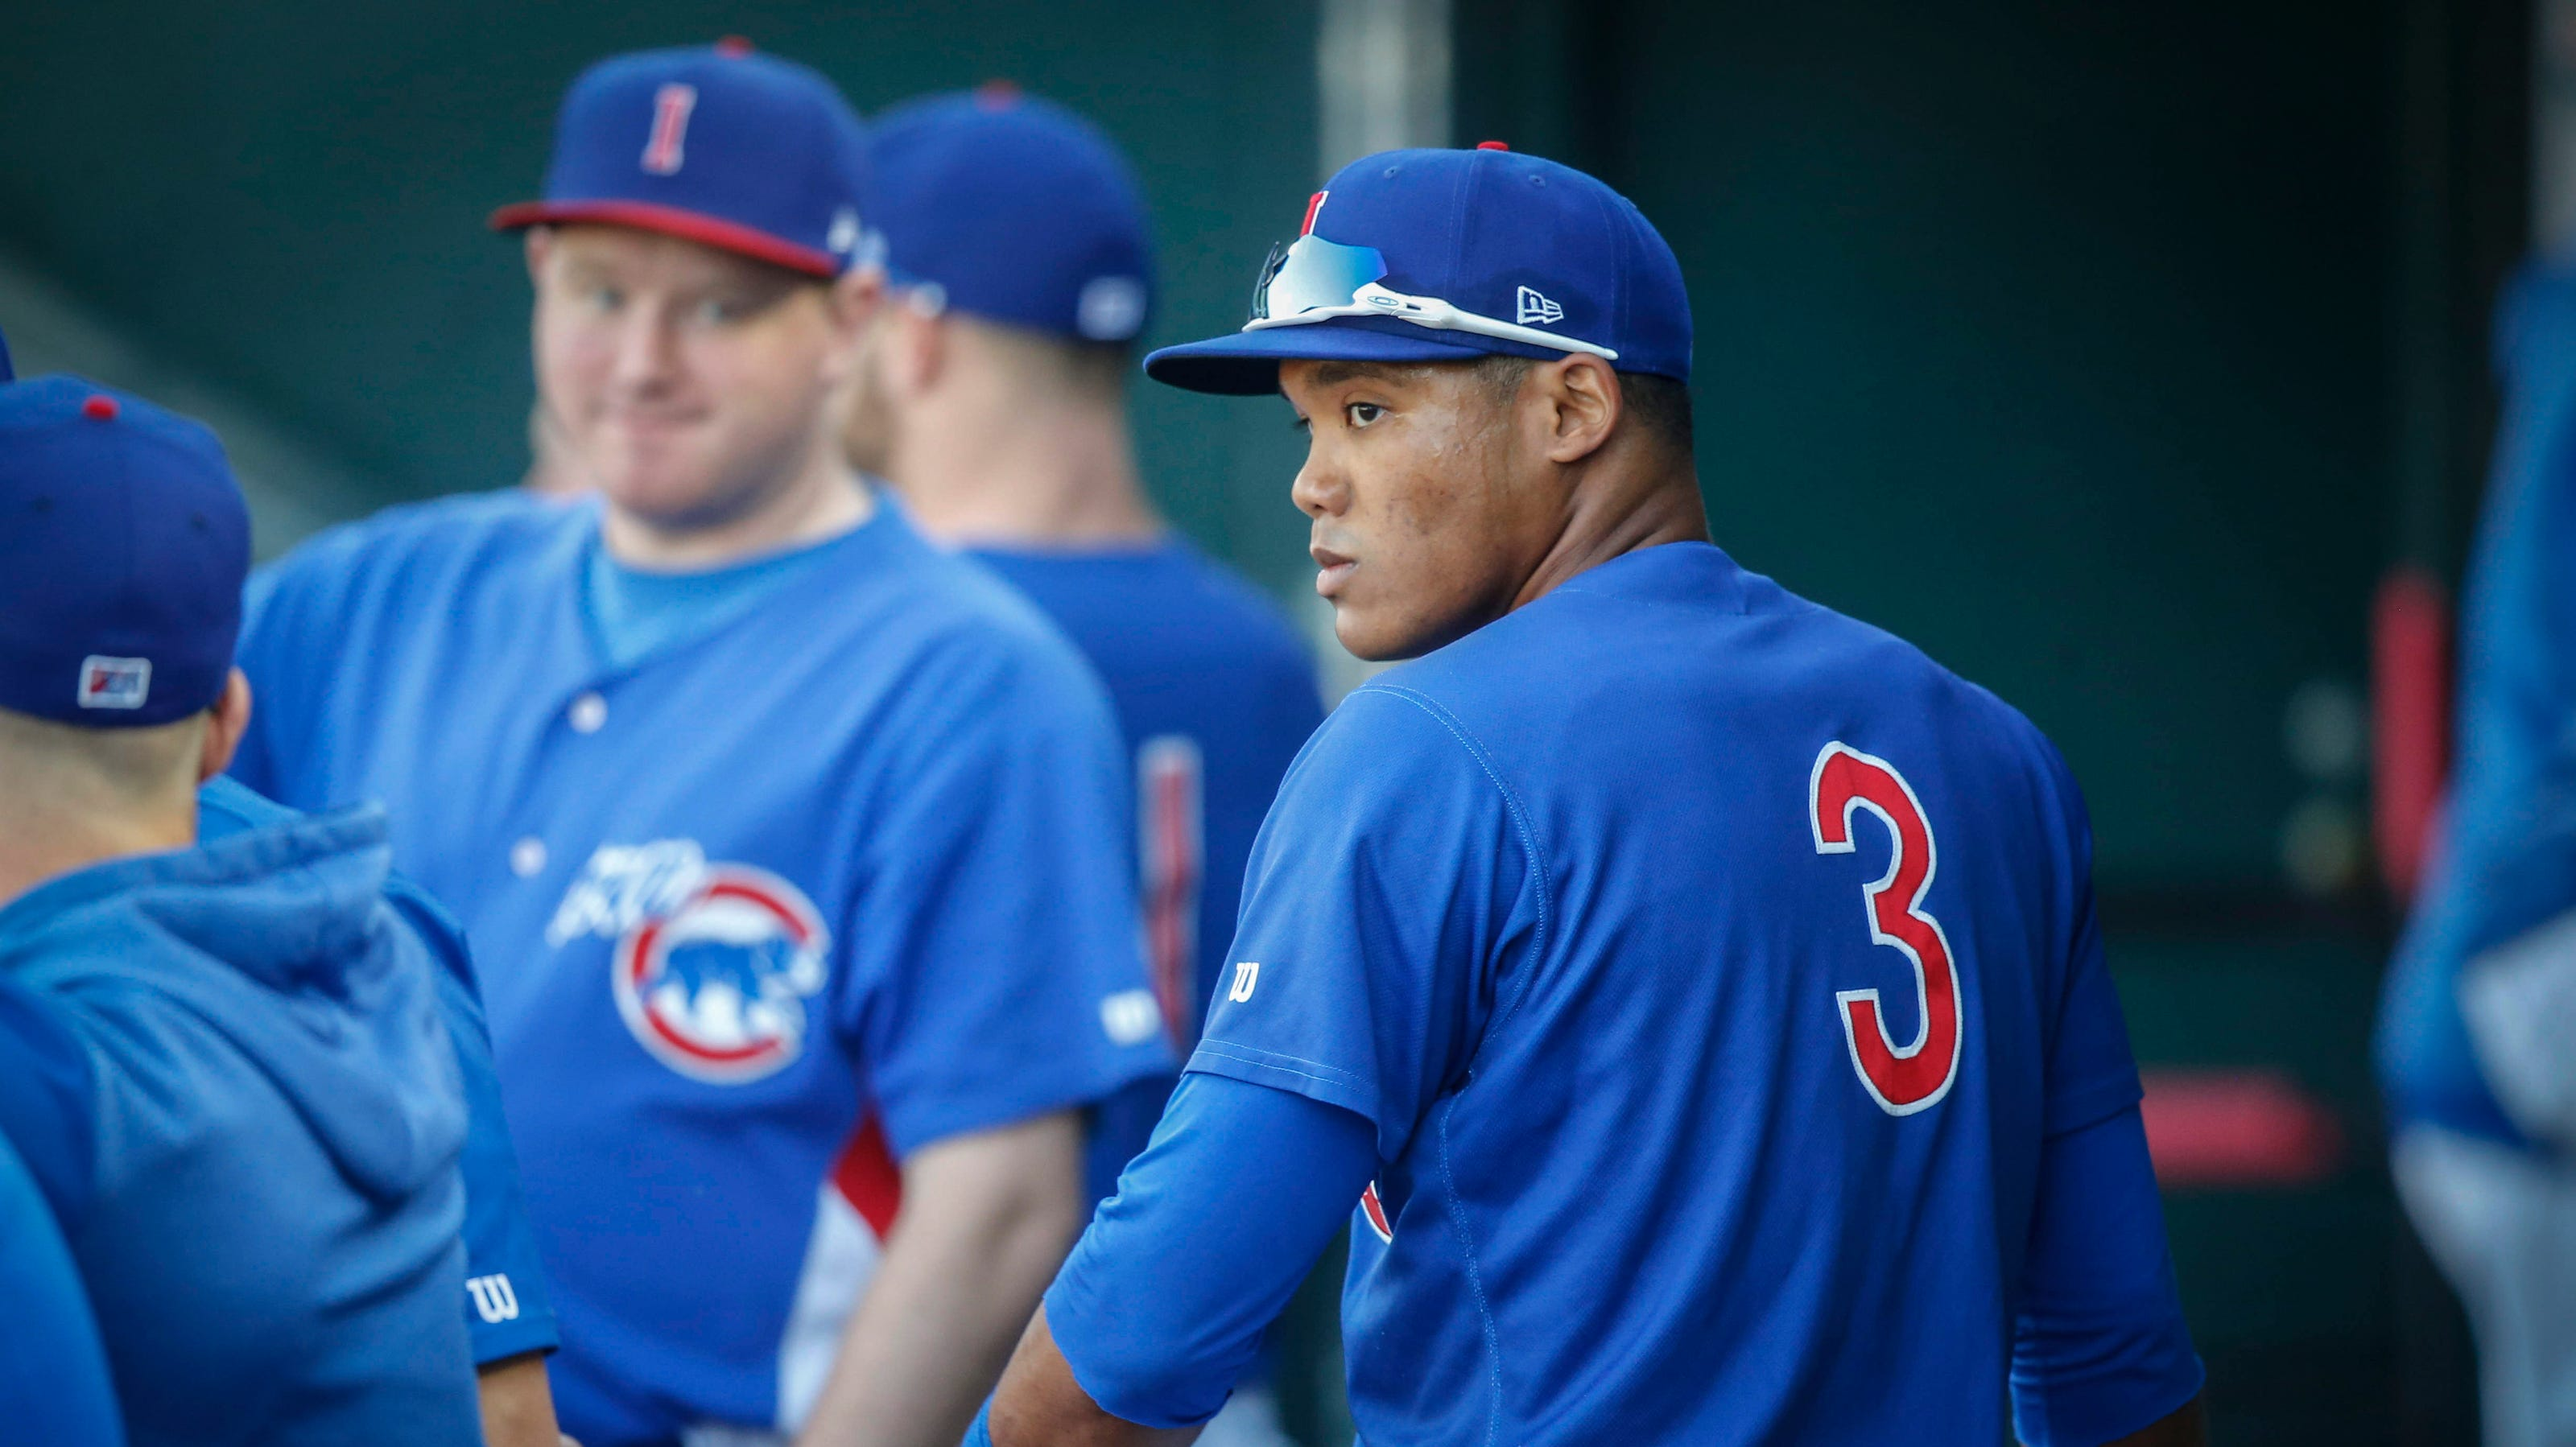 Cubs baseball: Addison Russell waiting for what's next with his future